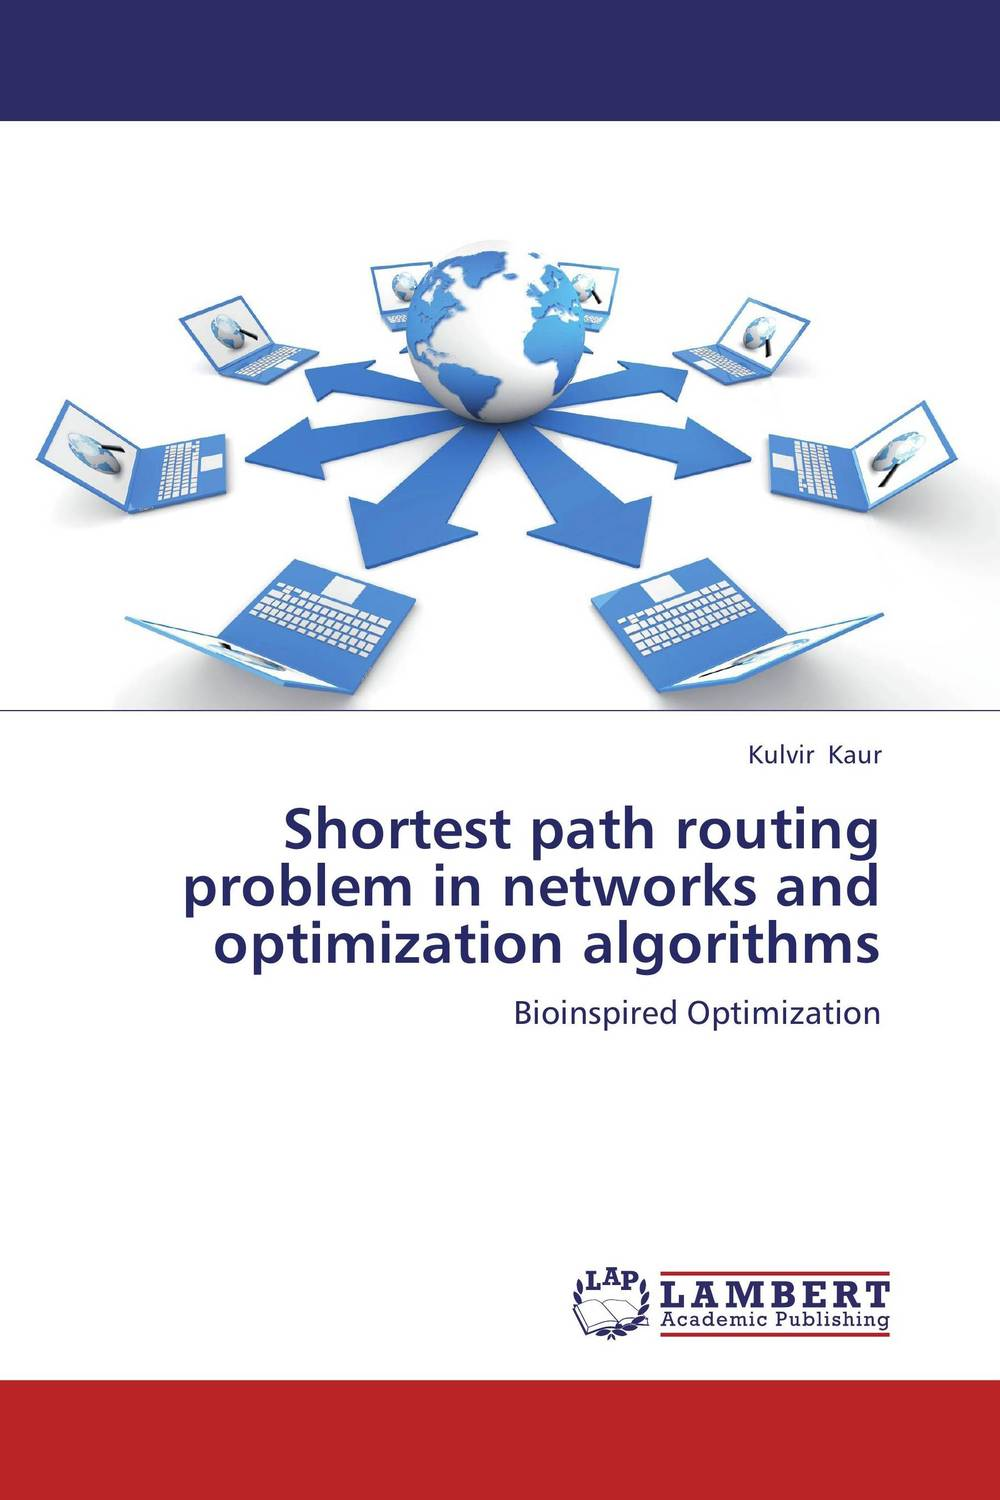 Shortest path routing problem in networks and optimization algorithms dynamic biological networks – stomatogast